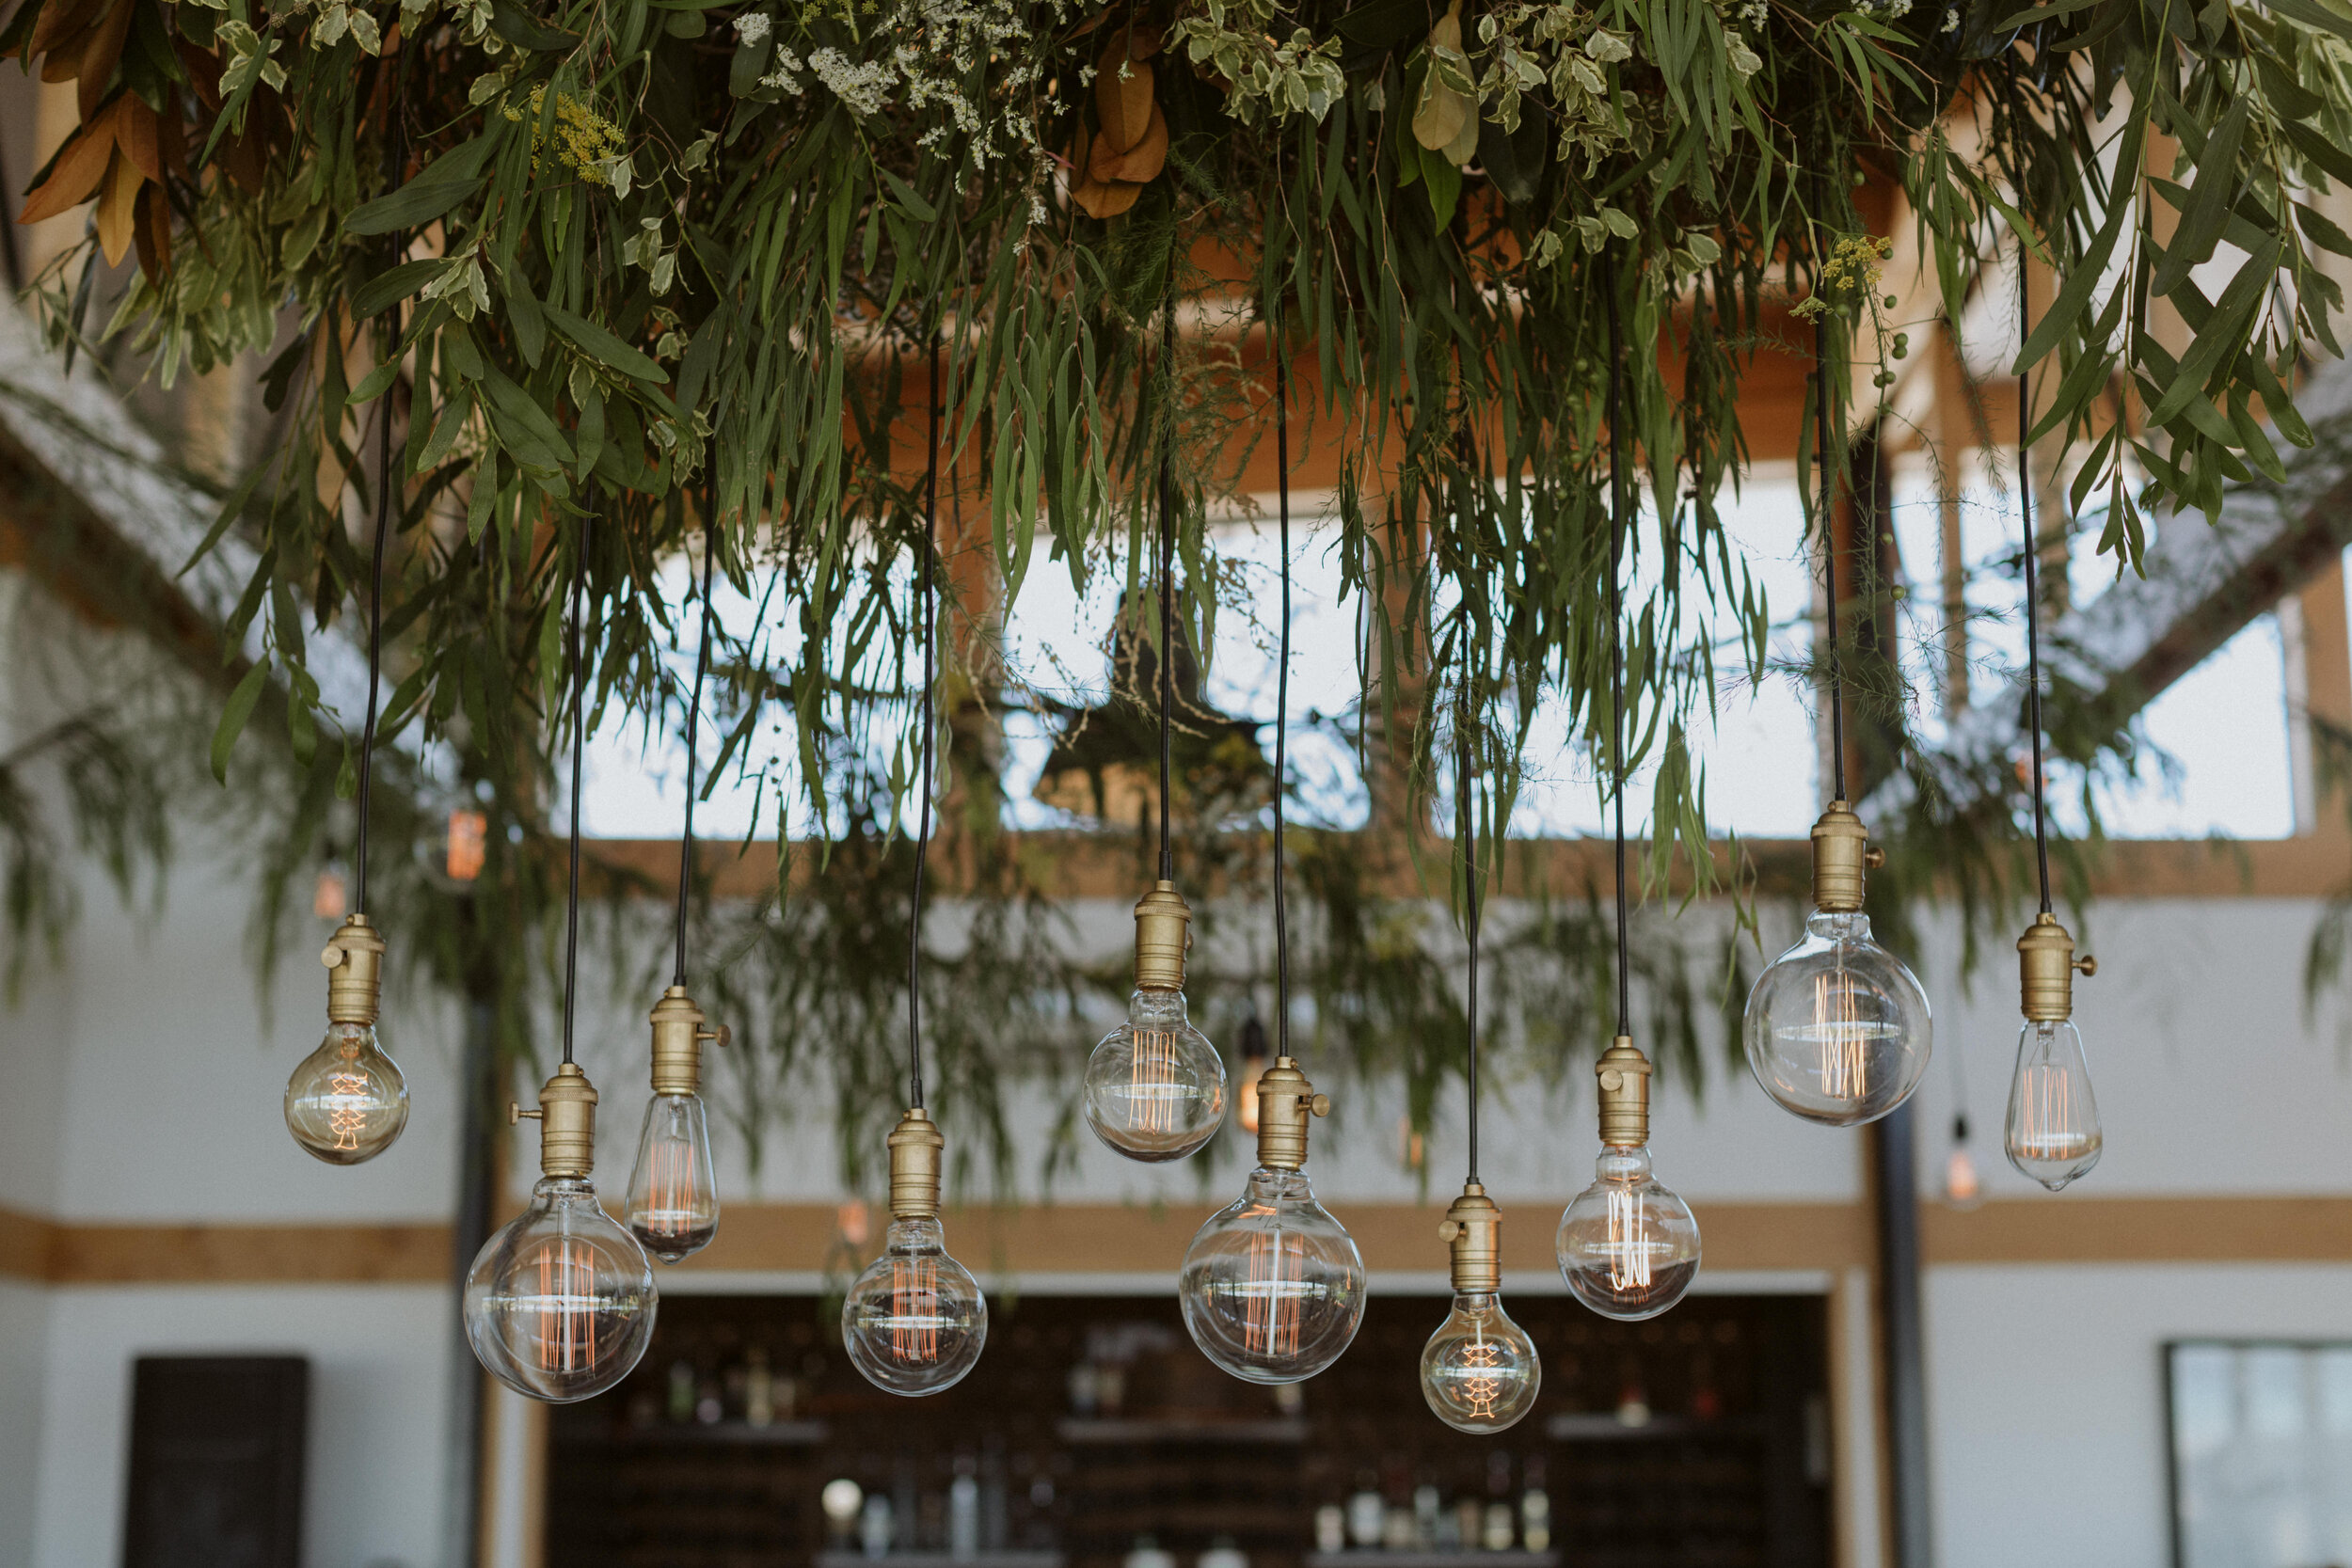 vintage bulb chandelier with greenery